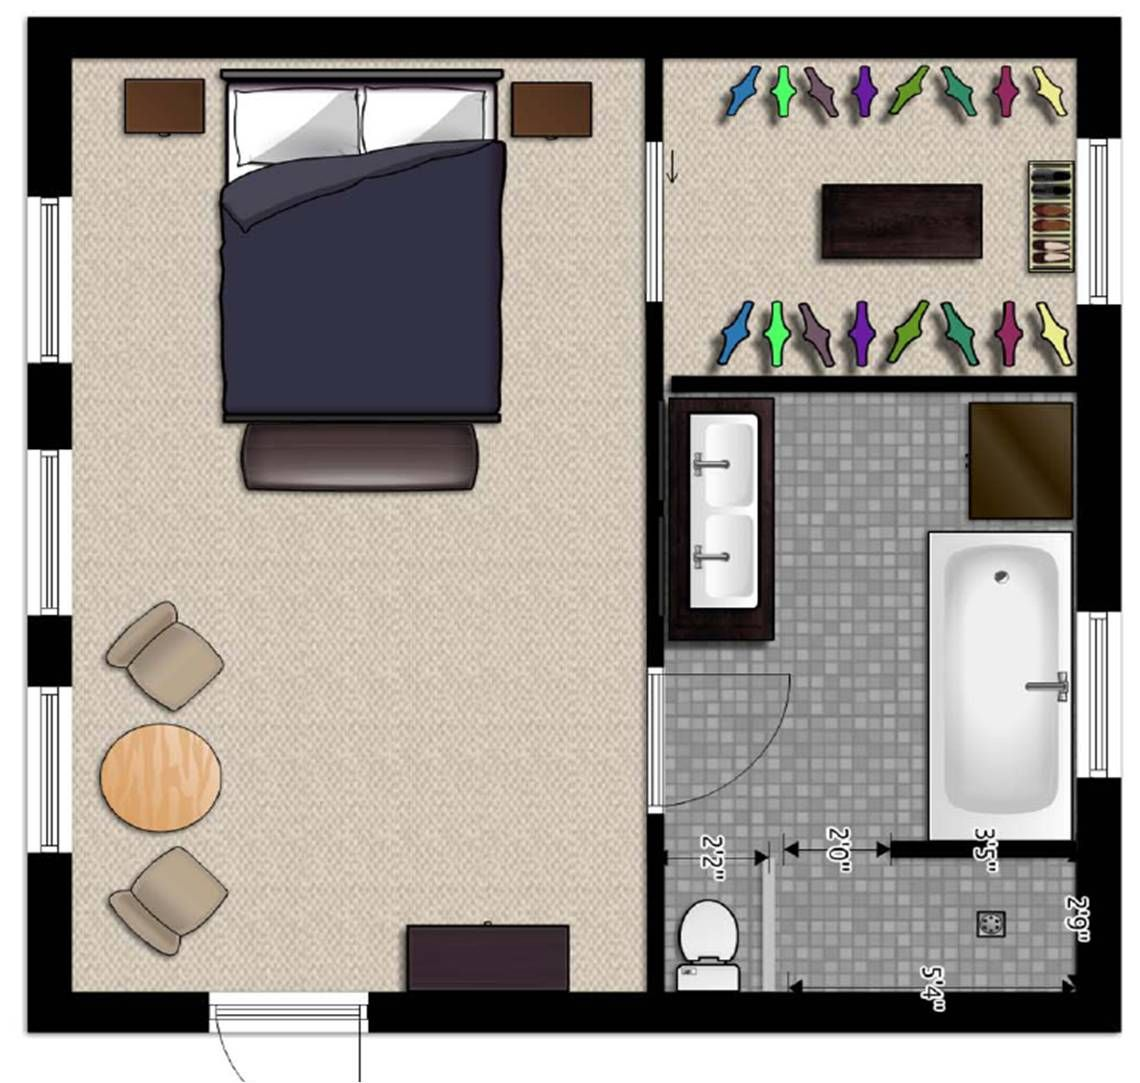 master bedroom addition floor plans And here is the proposed